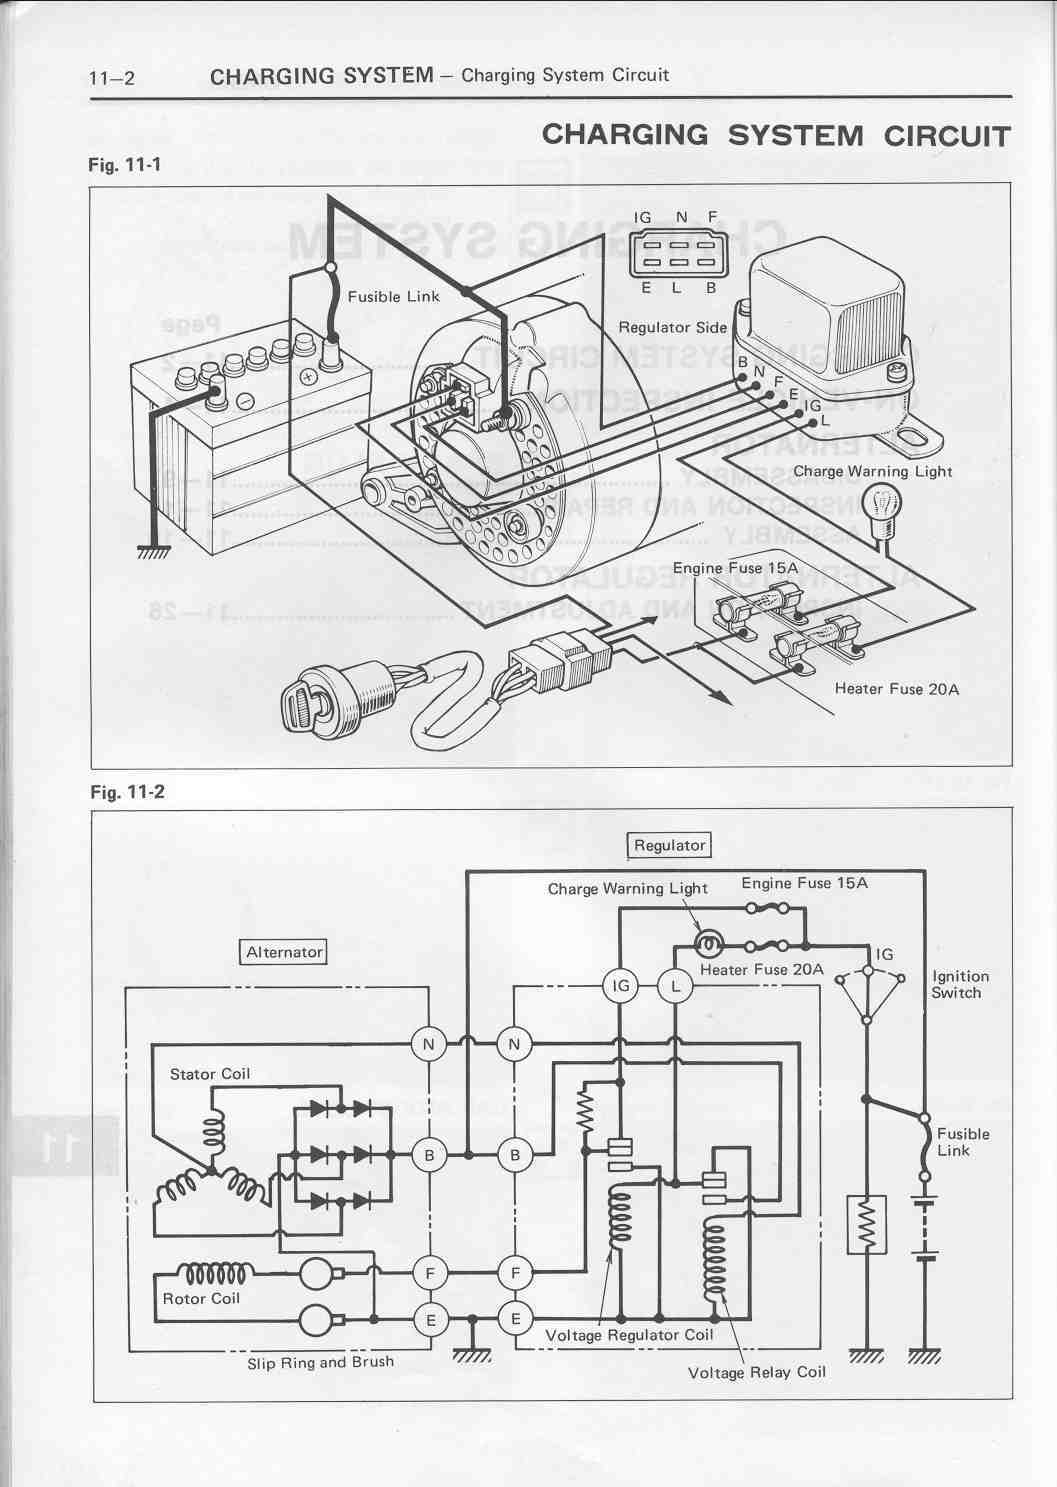 Toyota Voltage Regulator Diagram 32 Wiring Images For 1980 20r Motor Chgdiag1lu3 Ra60 21r C At